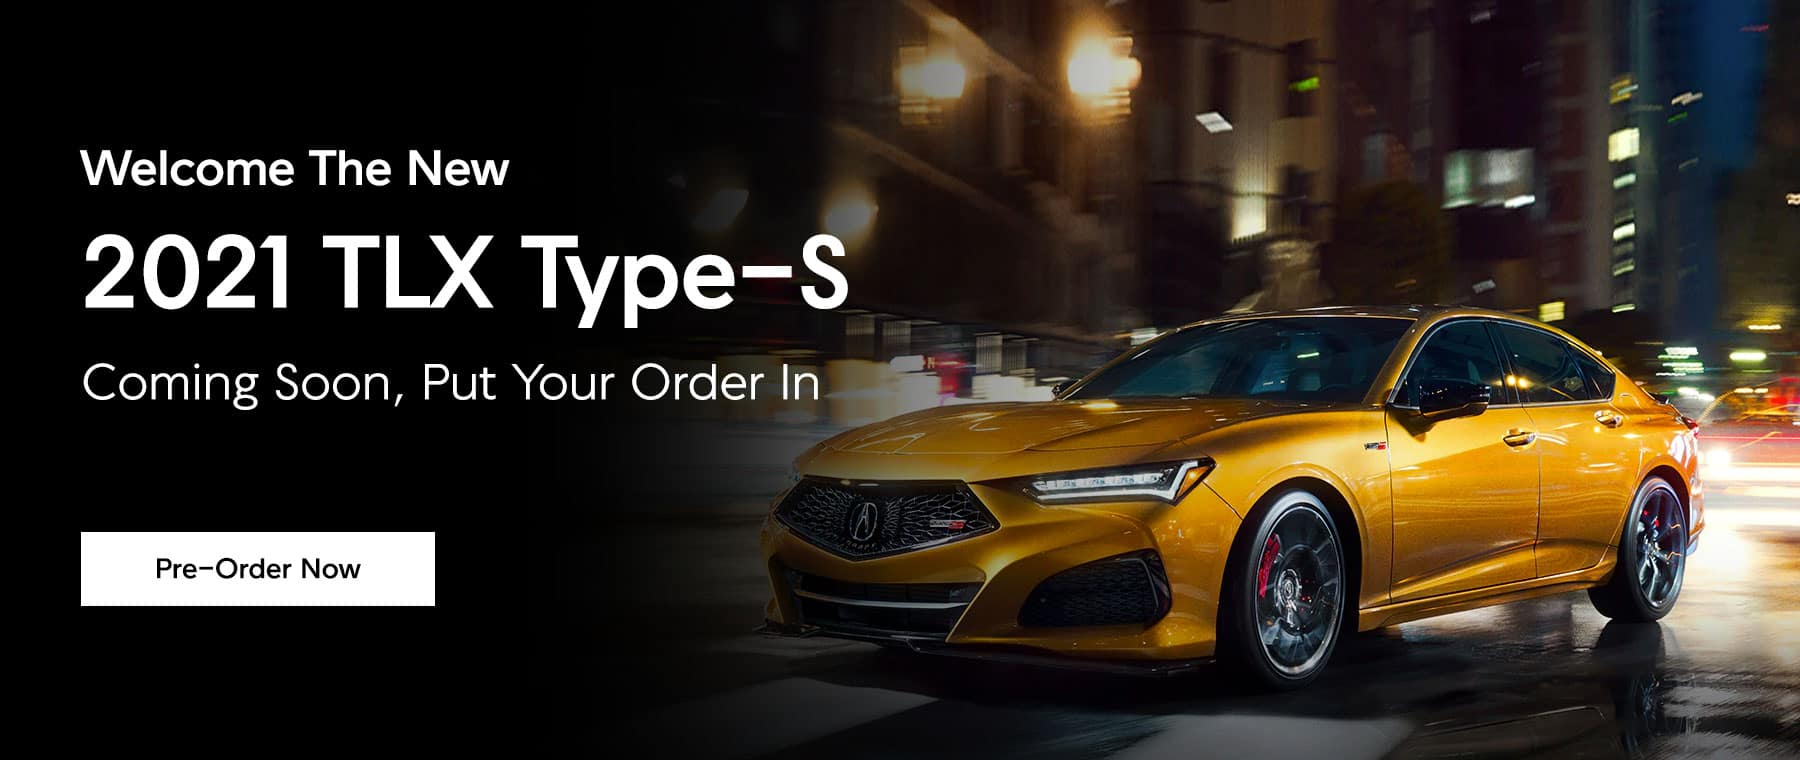 Welcome The New 2021 TLX Type-S. Coming Soon, Put Your Order In